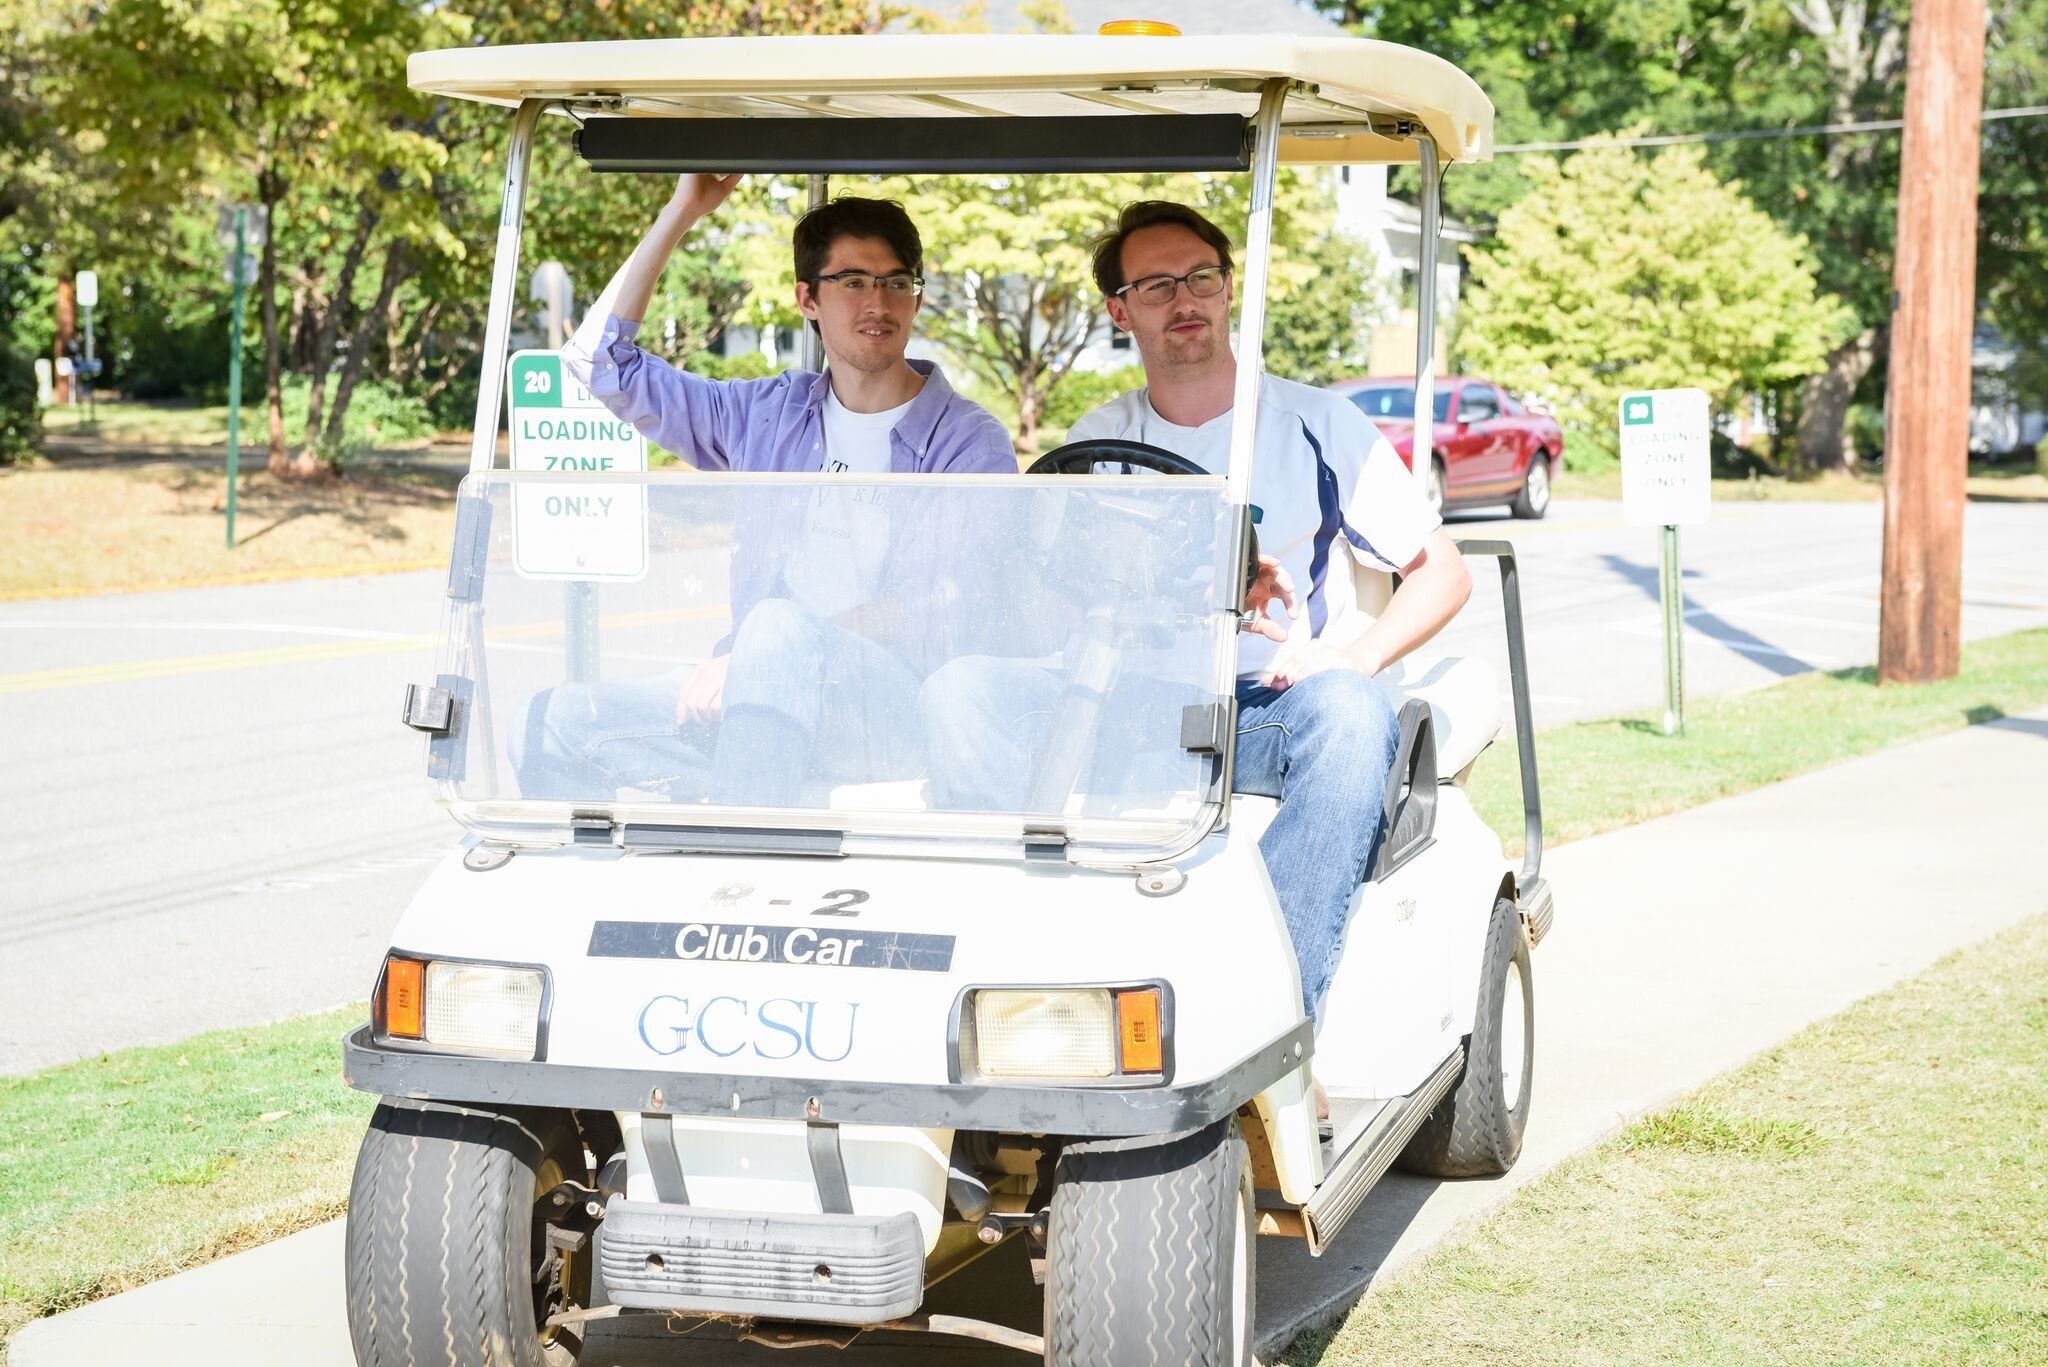 Alumni Dillon Vogt and Anderson Kendrick driving Georgia College's first solar-powered golf cart.